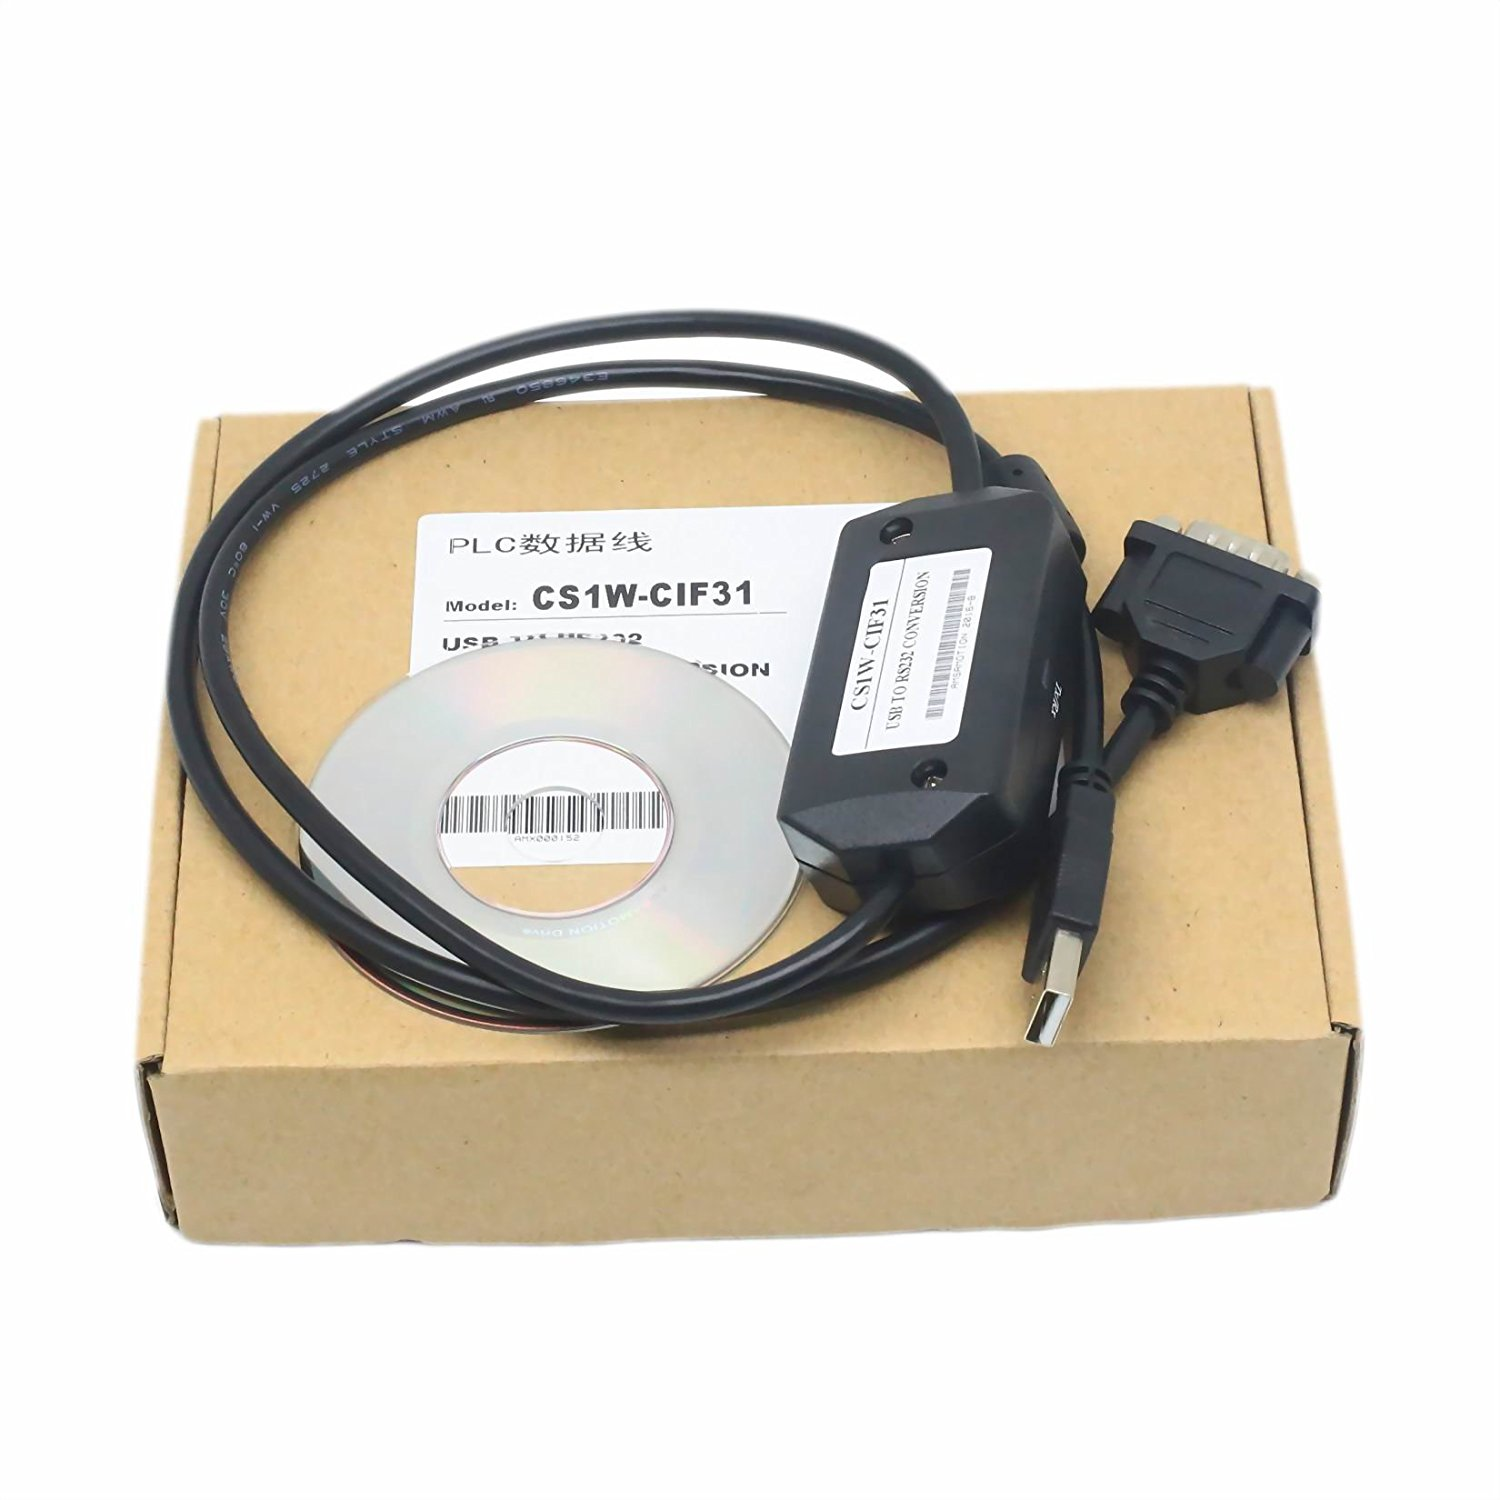 Cj Cs1w-cn226 Pc-cn226 Cs1w Cn226 Rs232 Adapter Programming Cable For Omron Cs Cqm1h And Cpm 2c Plc